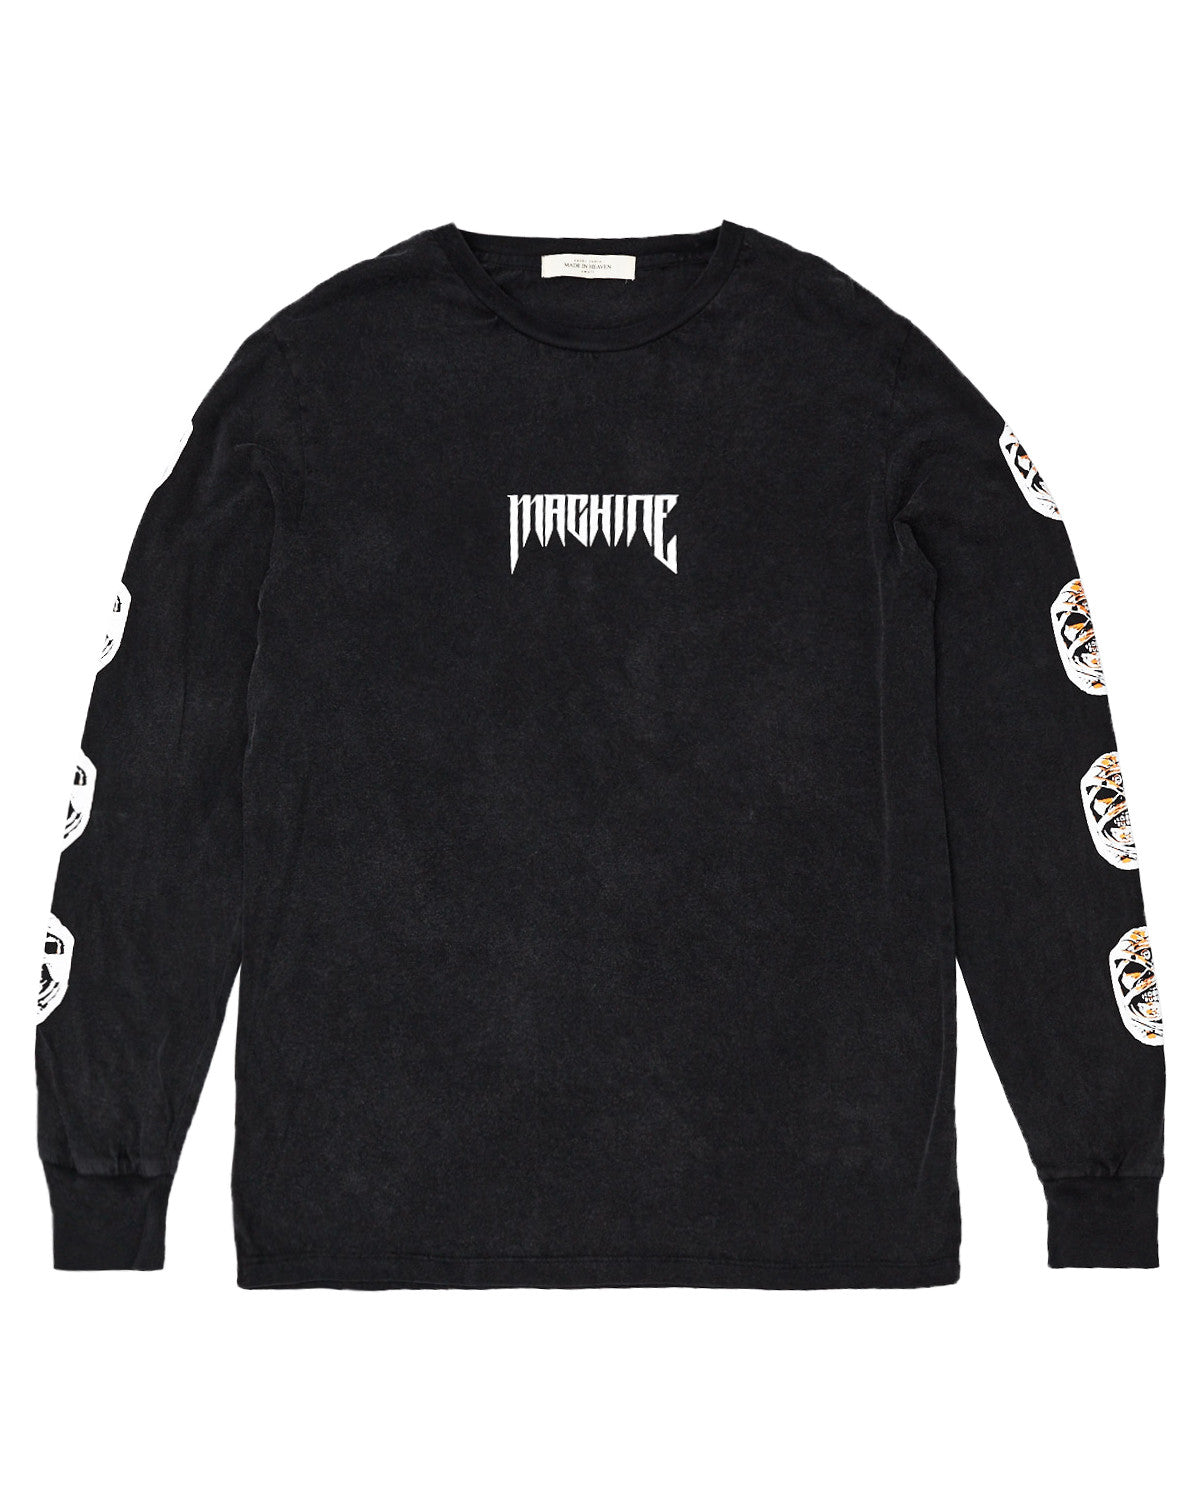 Machine Long Sleeve T-Shirt Vintage Black